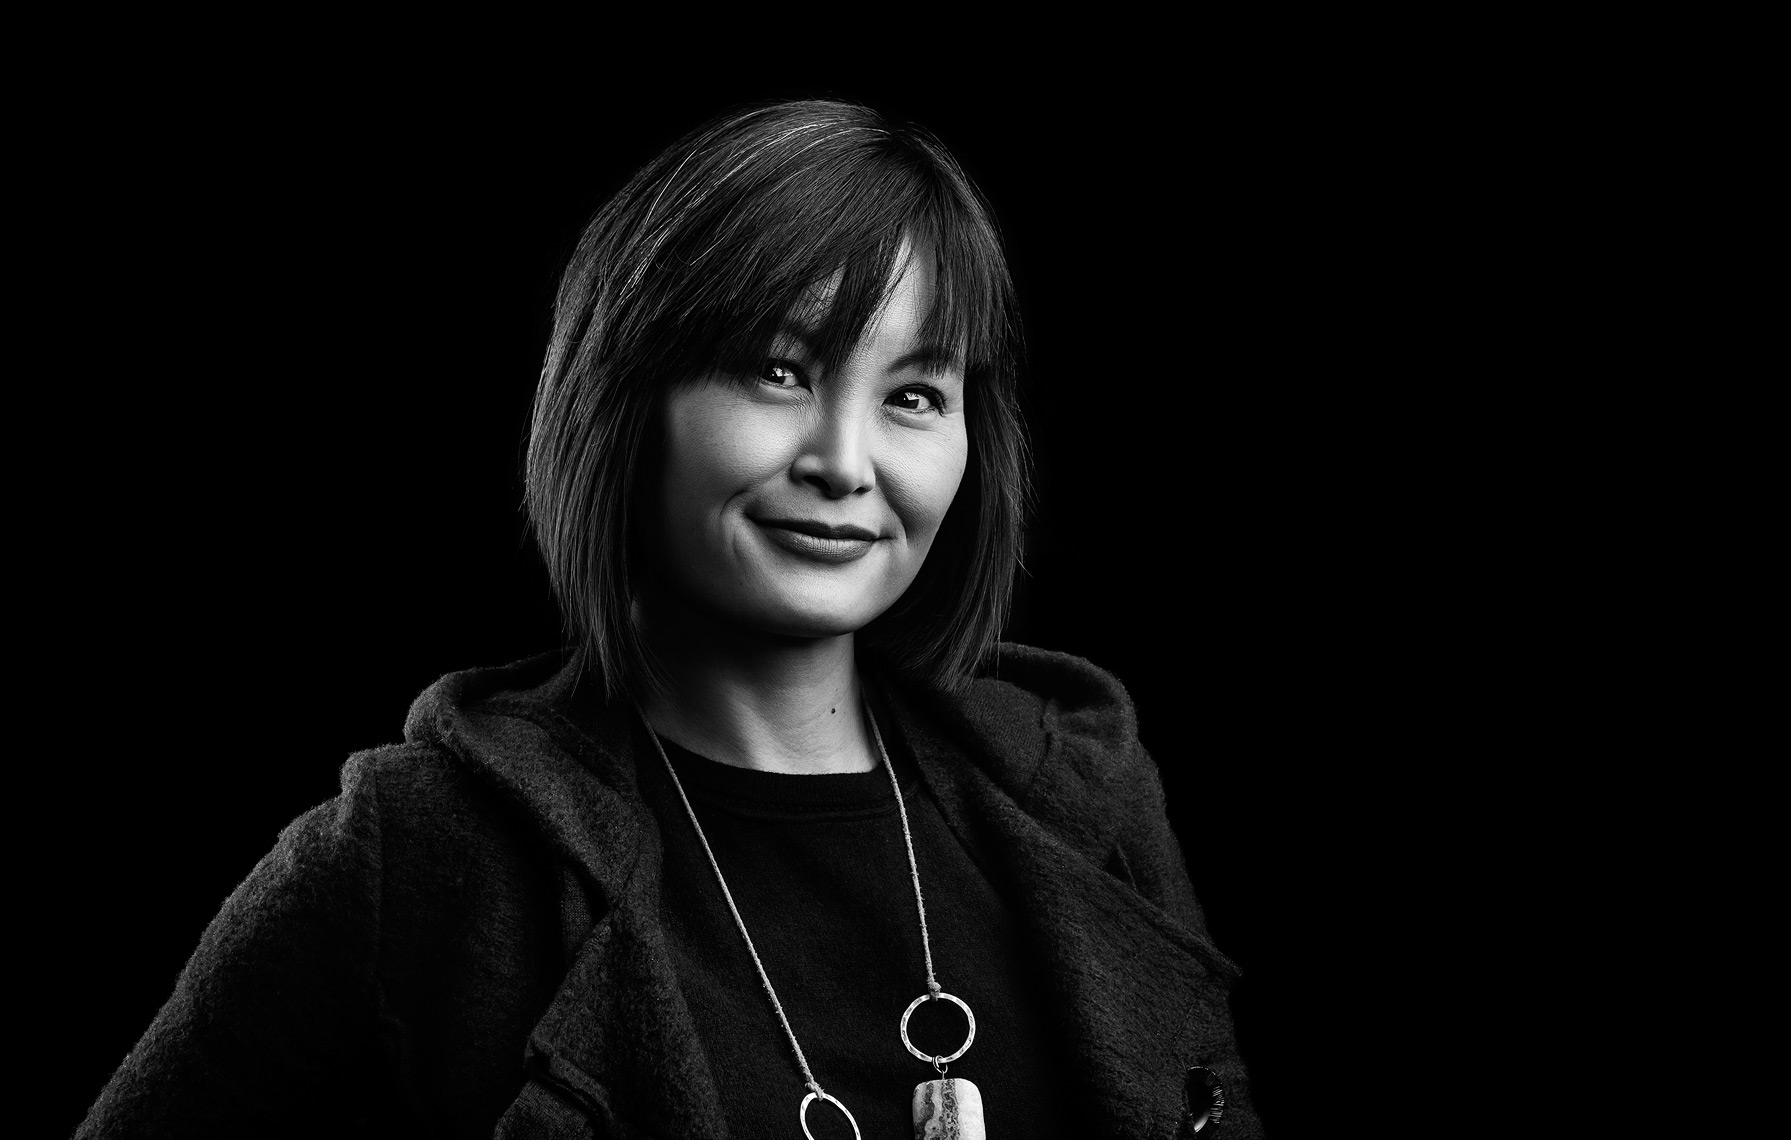 Black and White portraits of CXO employees